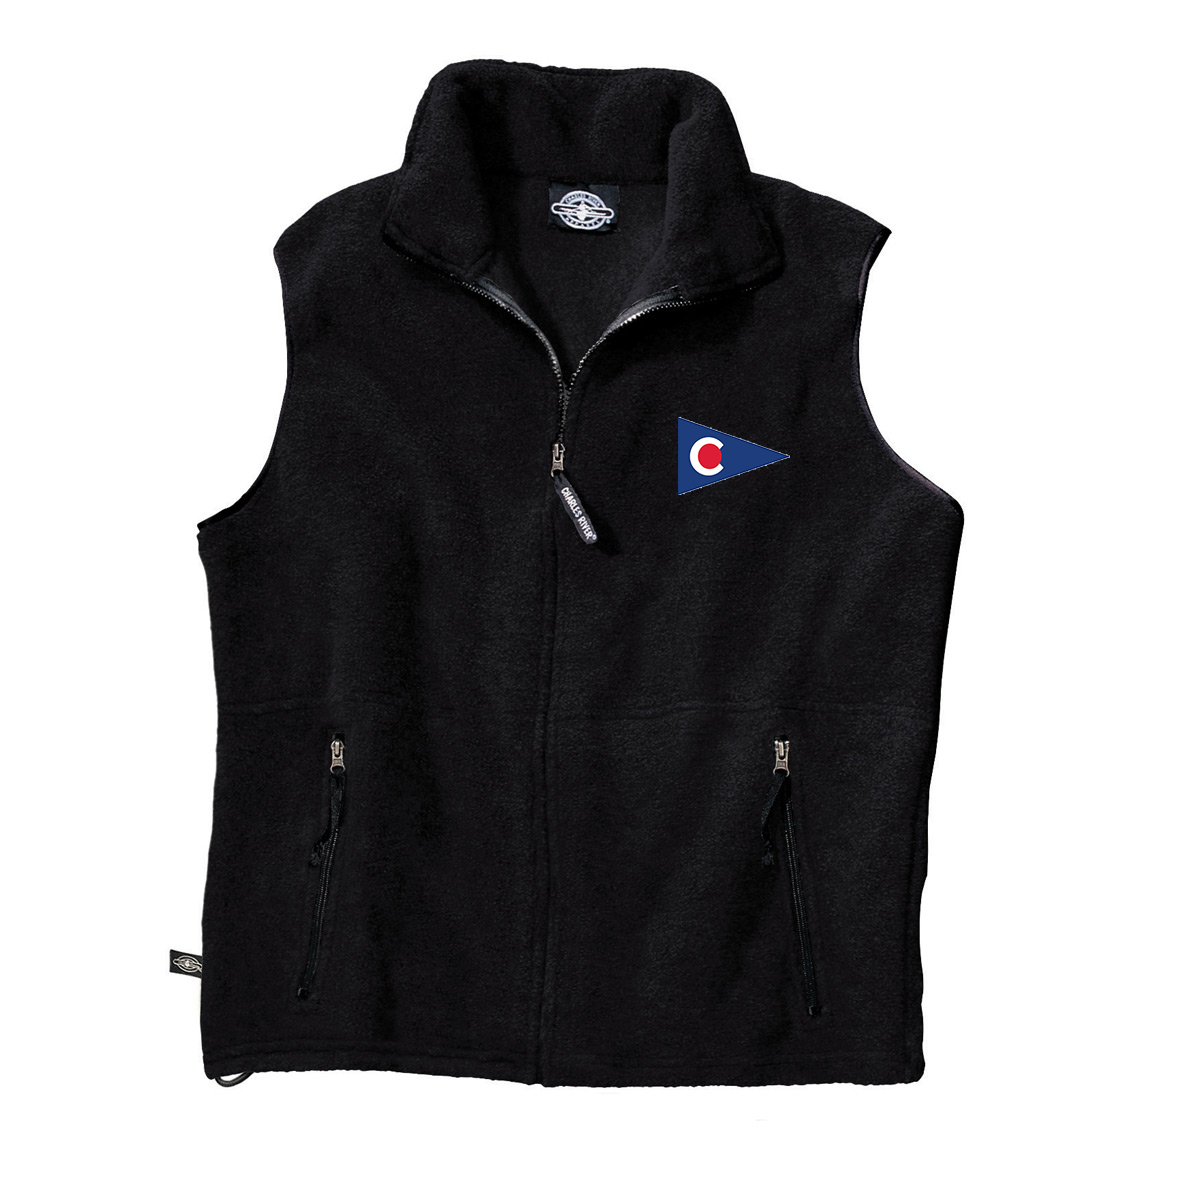 CYC- K'S FLEECE VEST